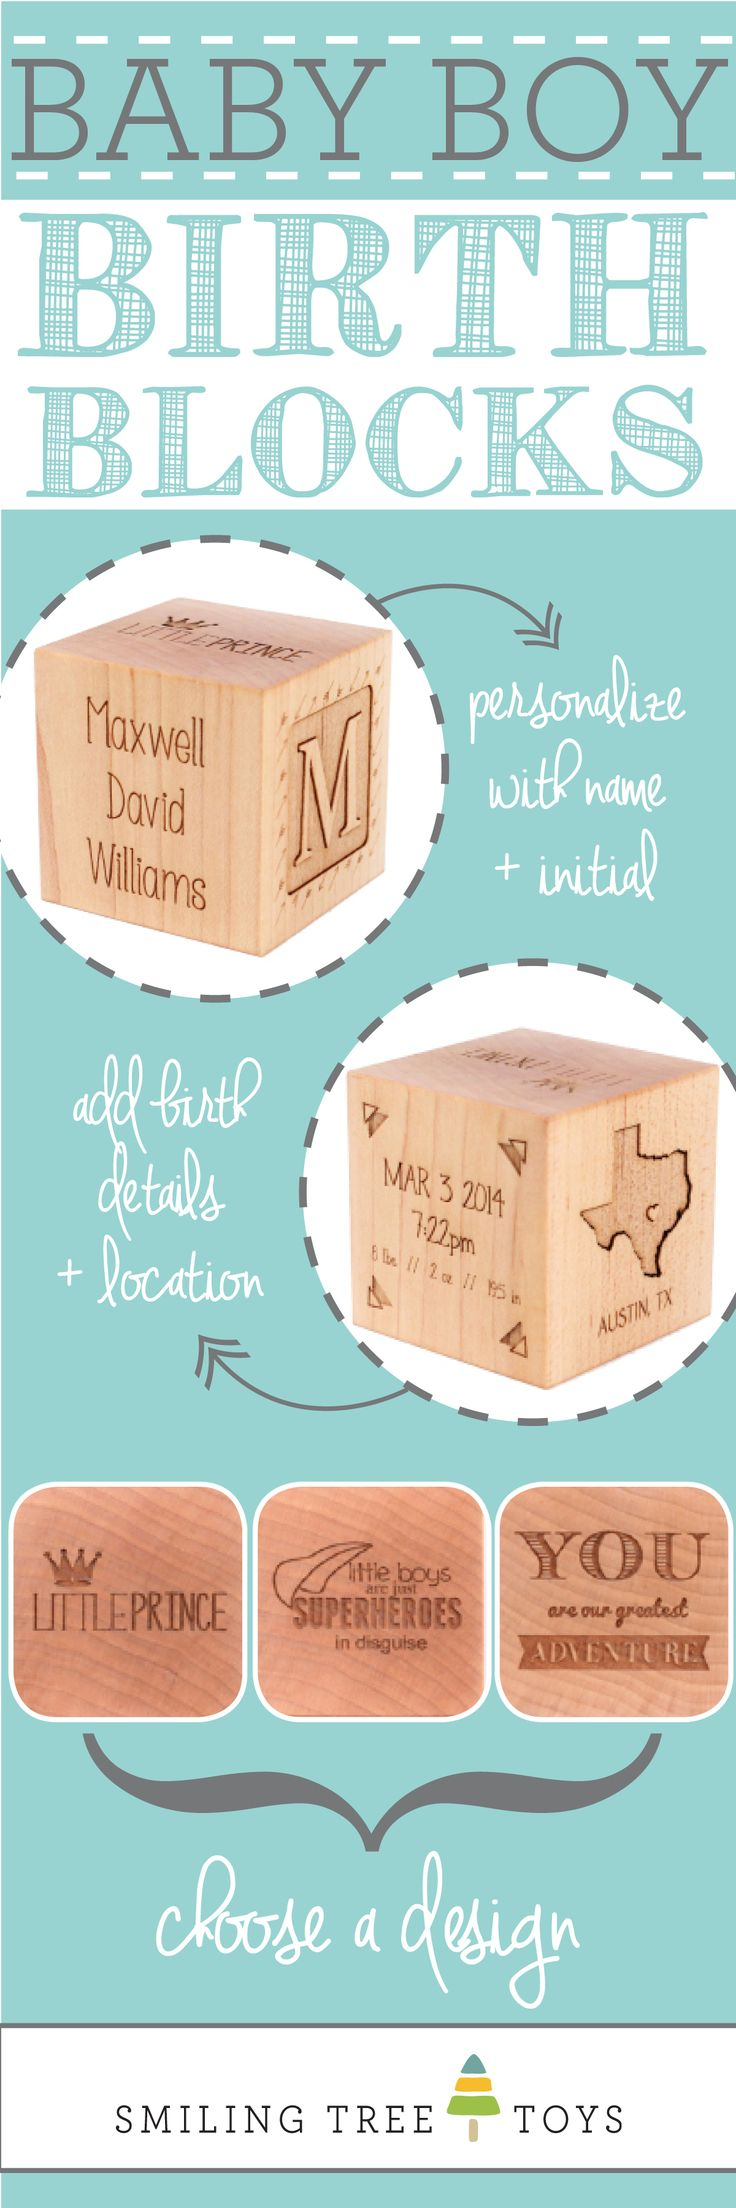 Keepsake Boy Birth Block | Personalized, natural, heirloom gift celebrating baby boy's birth from Smiling Tree Toys